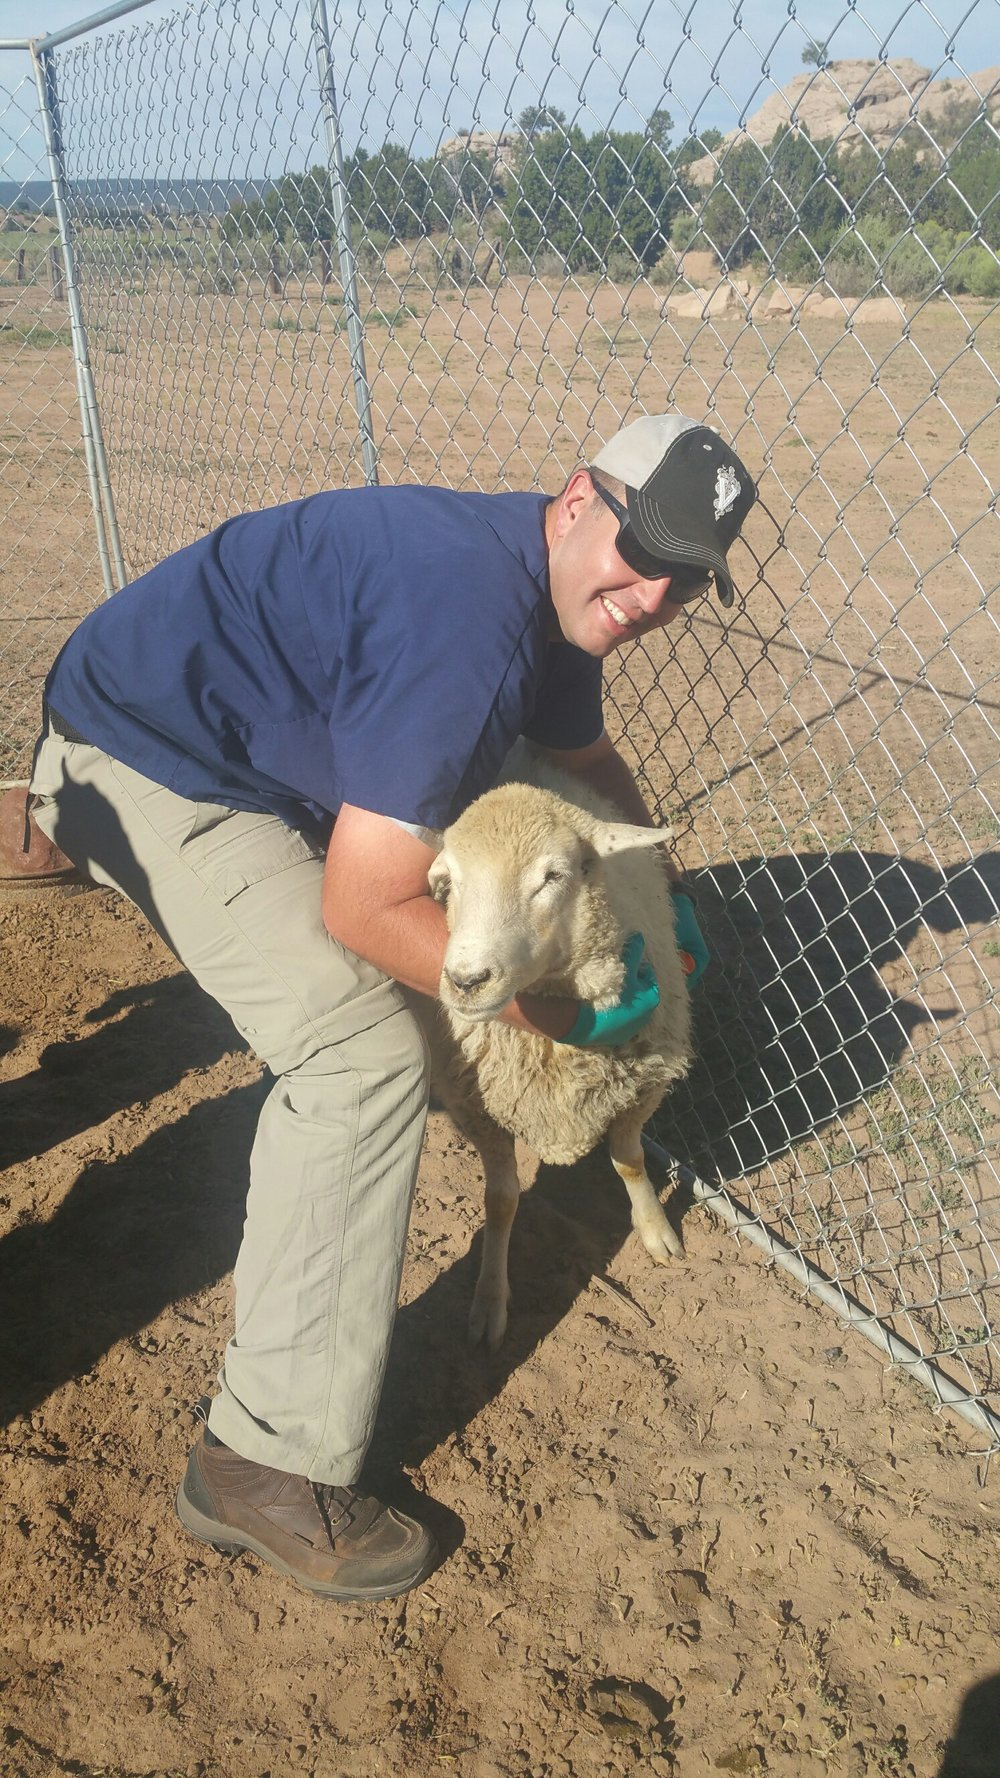 Brad CVM with Sheep.JPG